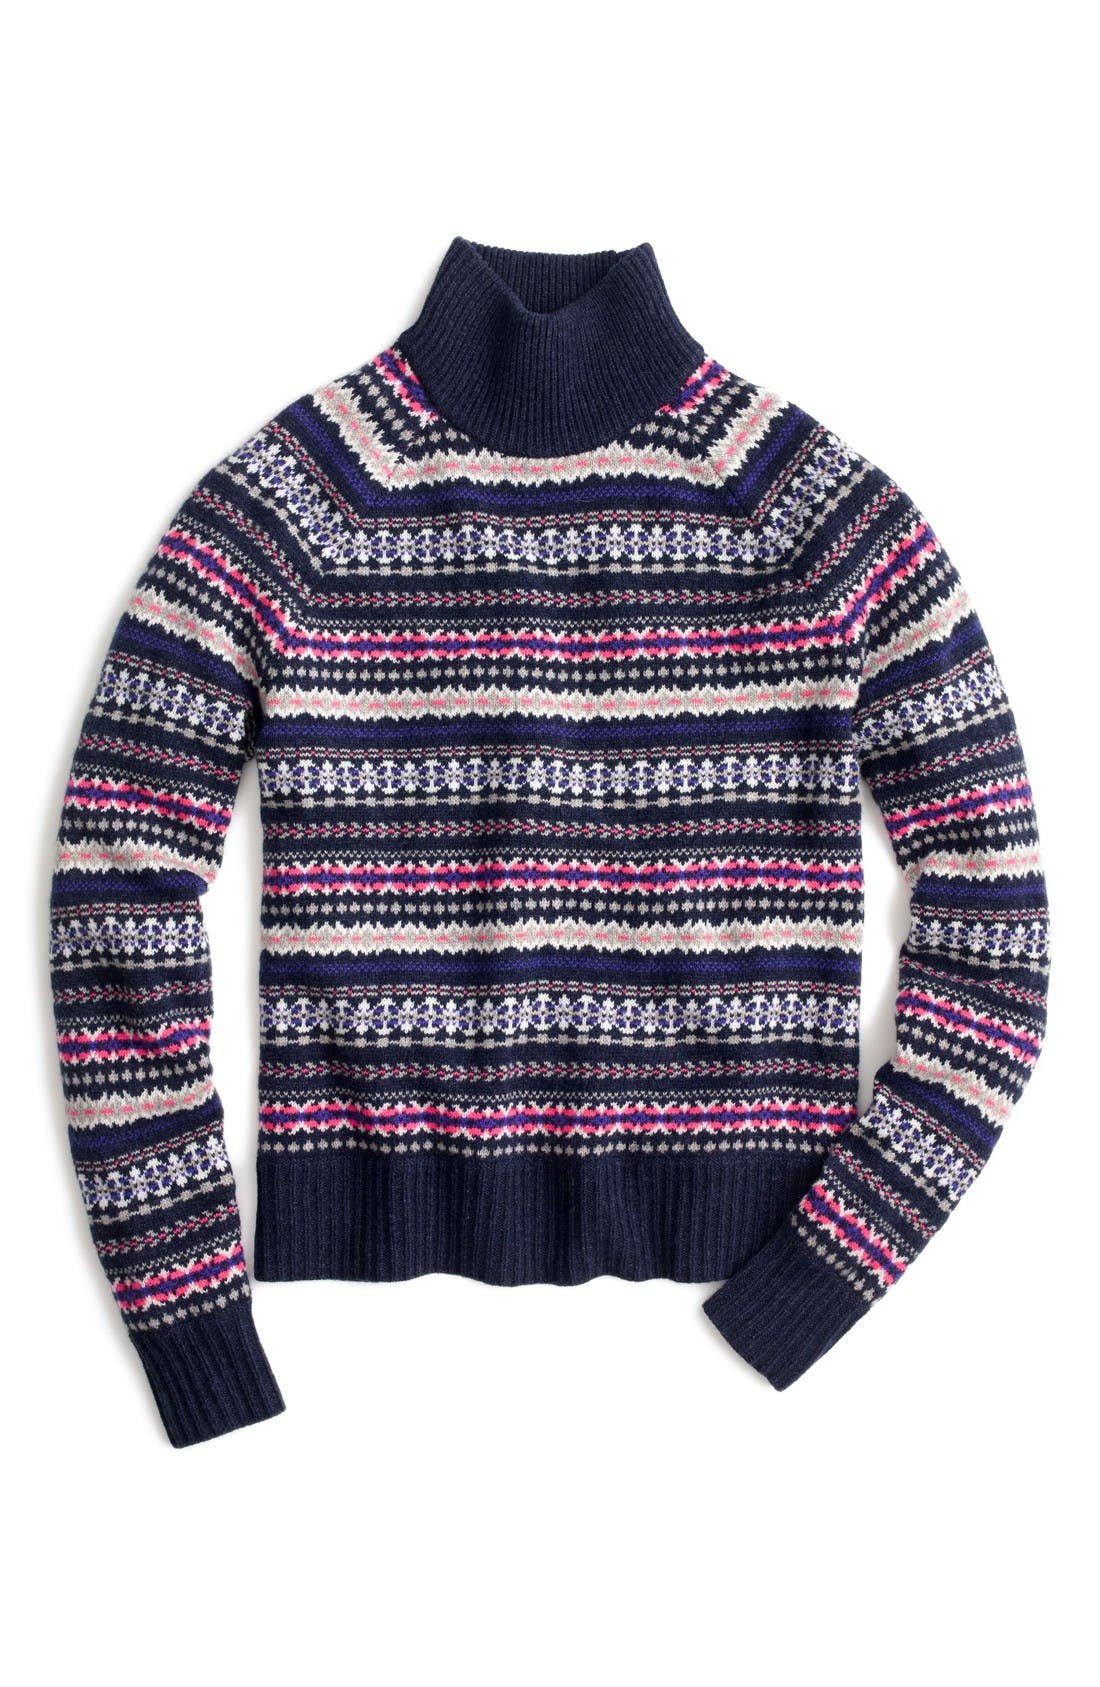 J.Crew Fair Isle Turtleneck Sweater | Nordstrom